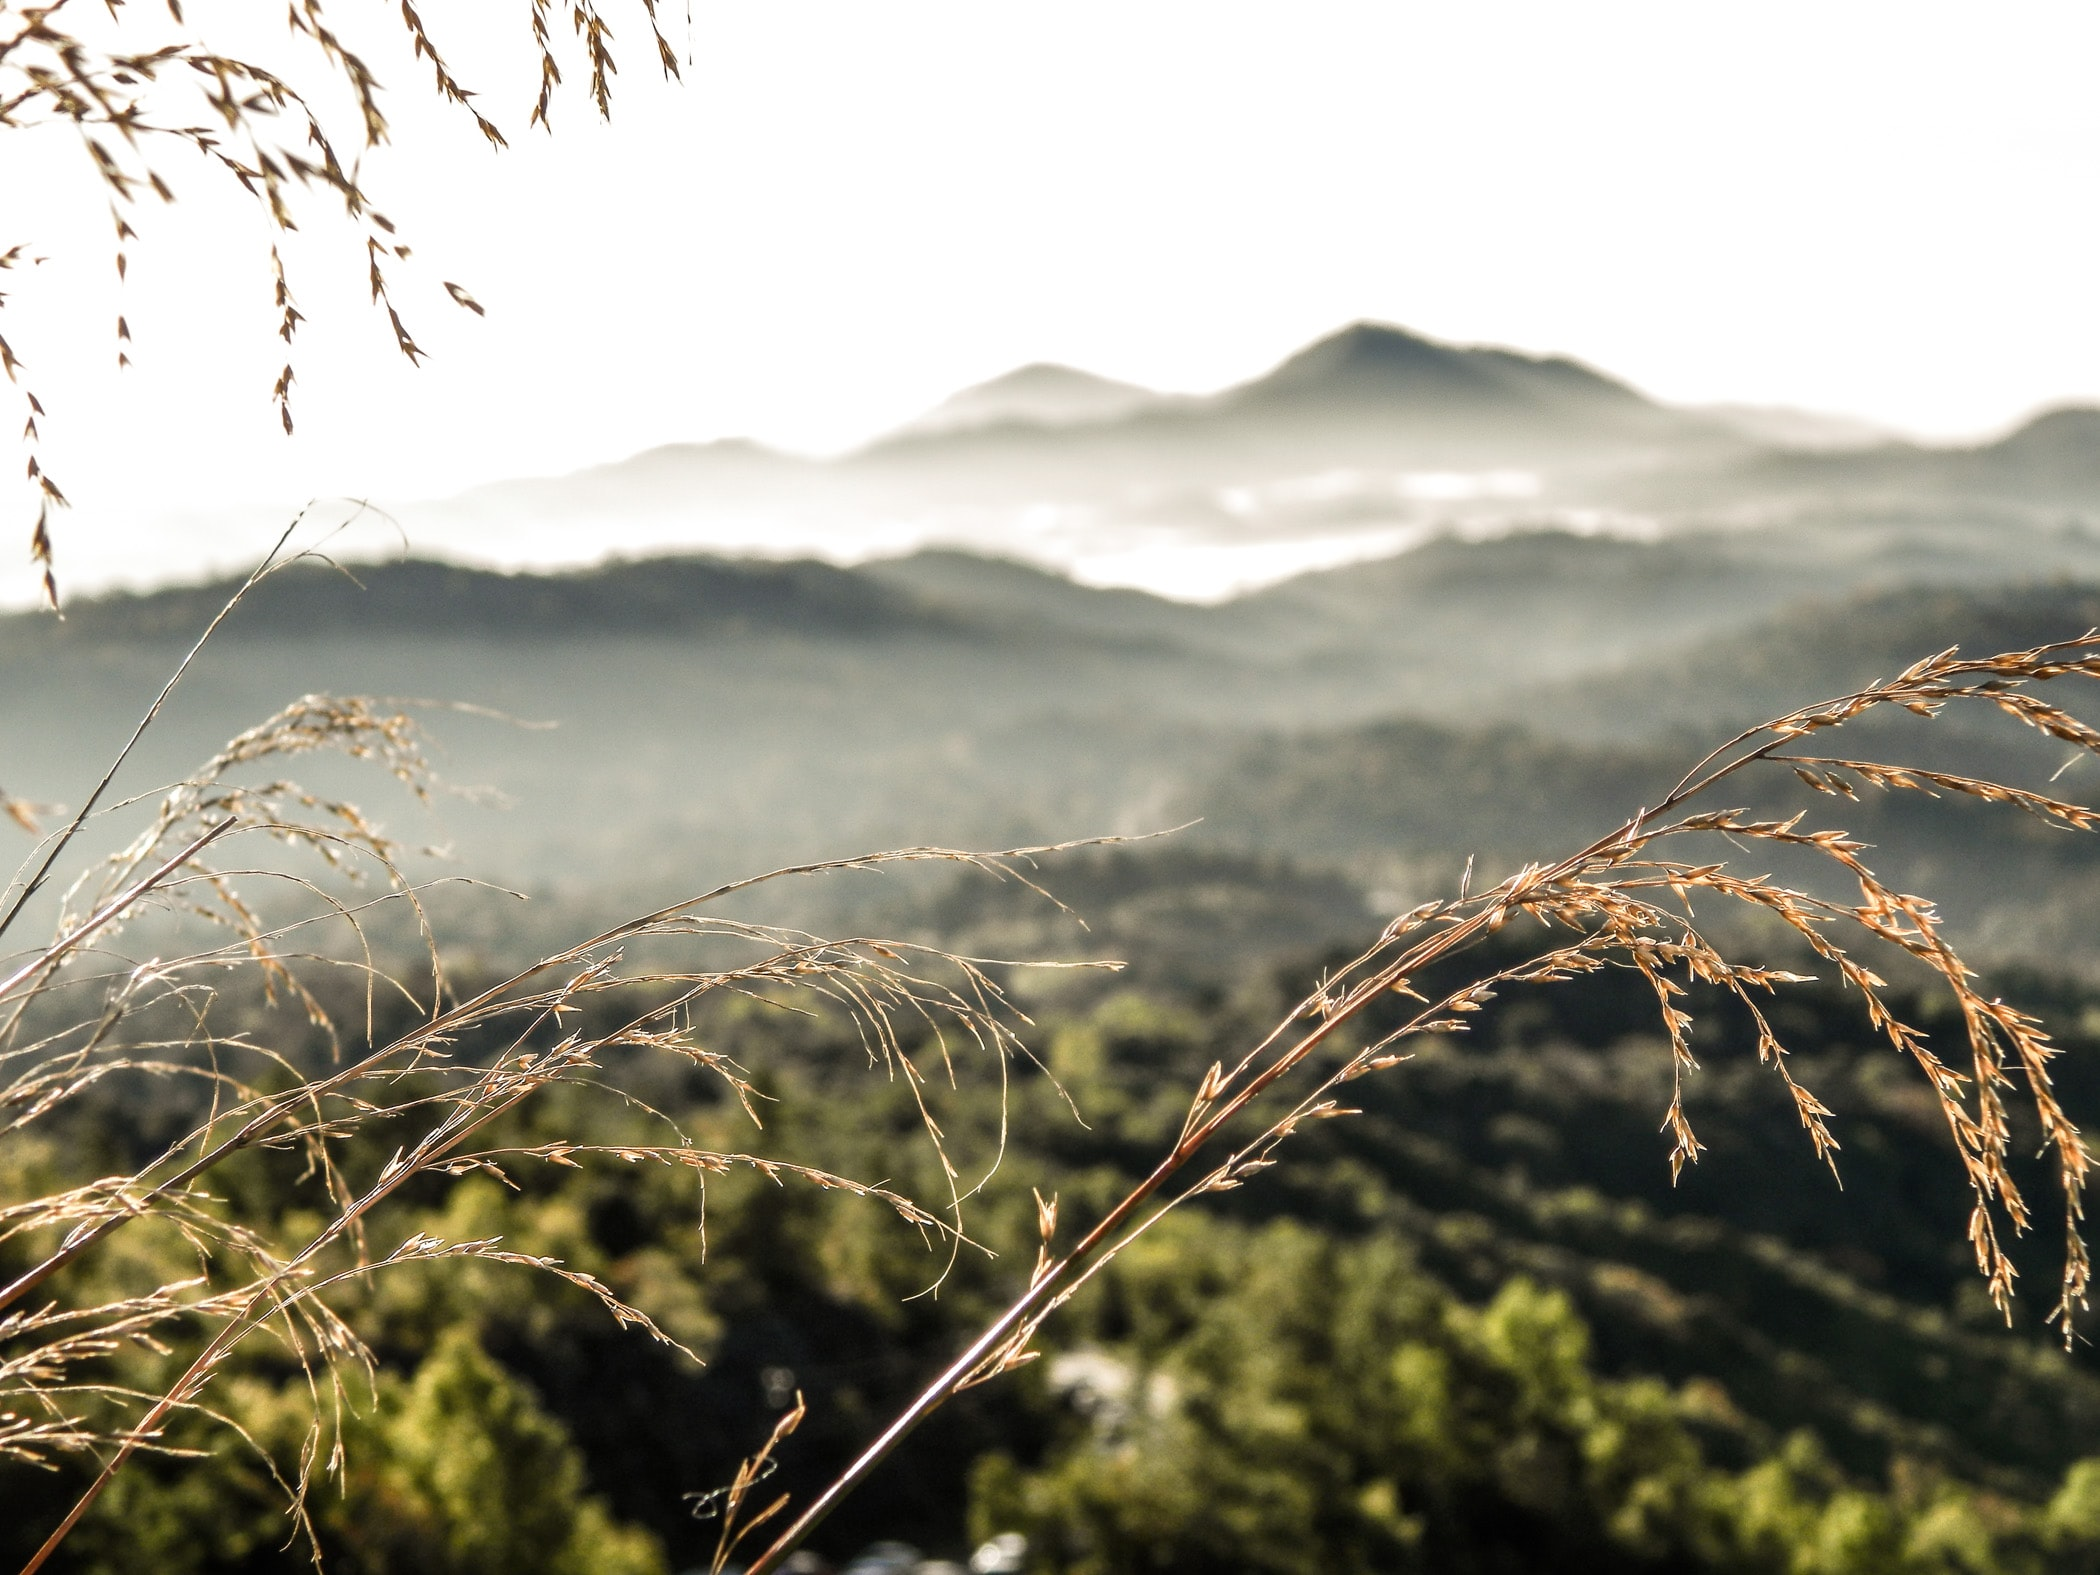 Dry blades of grass against a blurry mountain landscape in the background